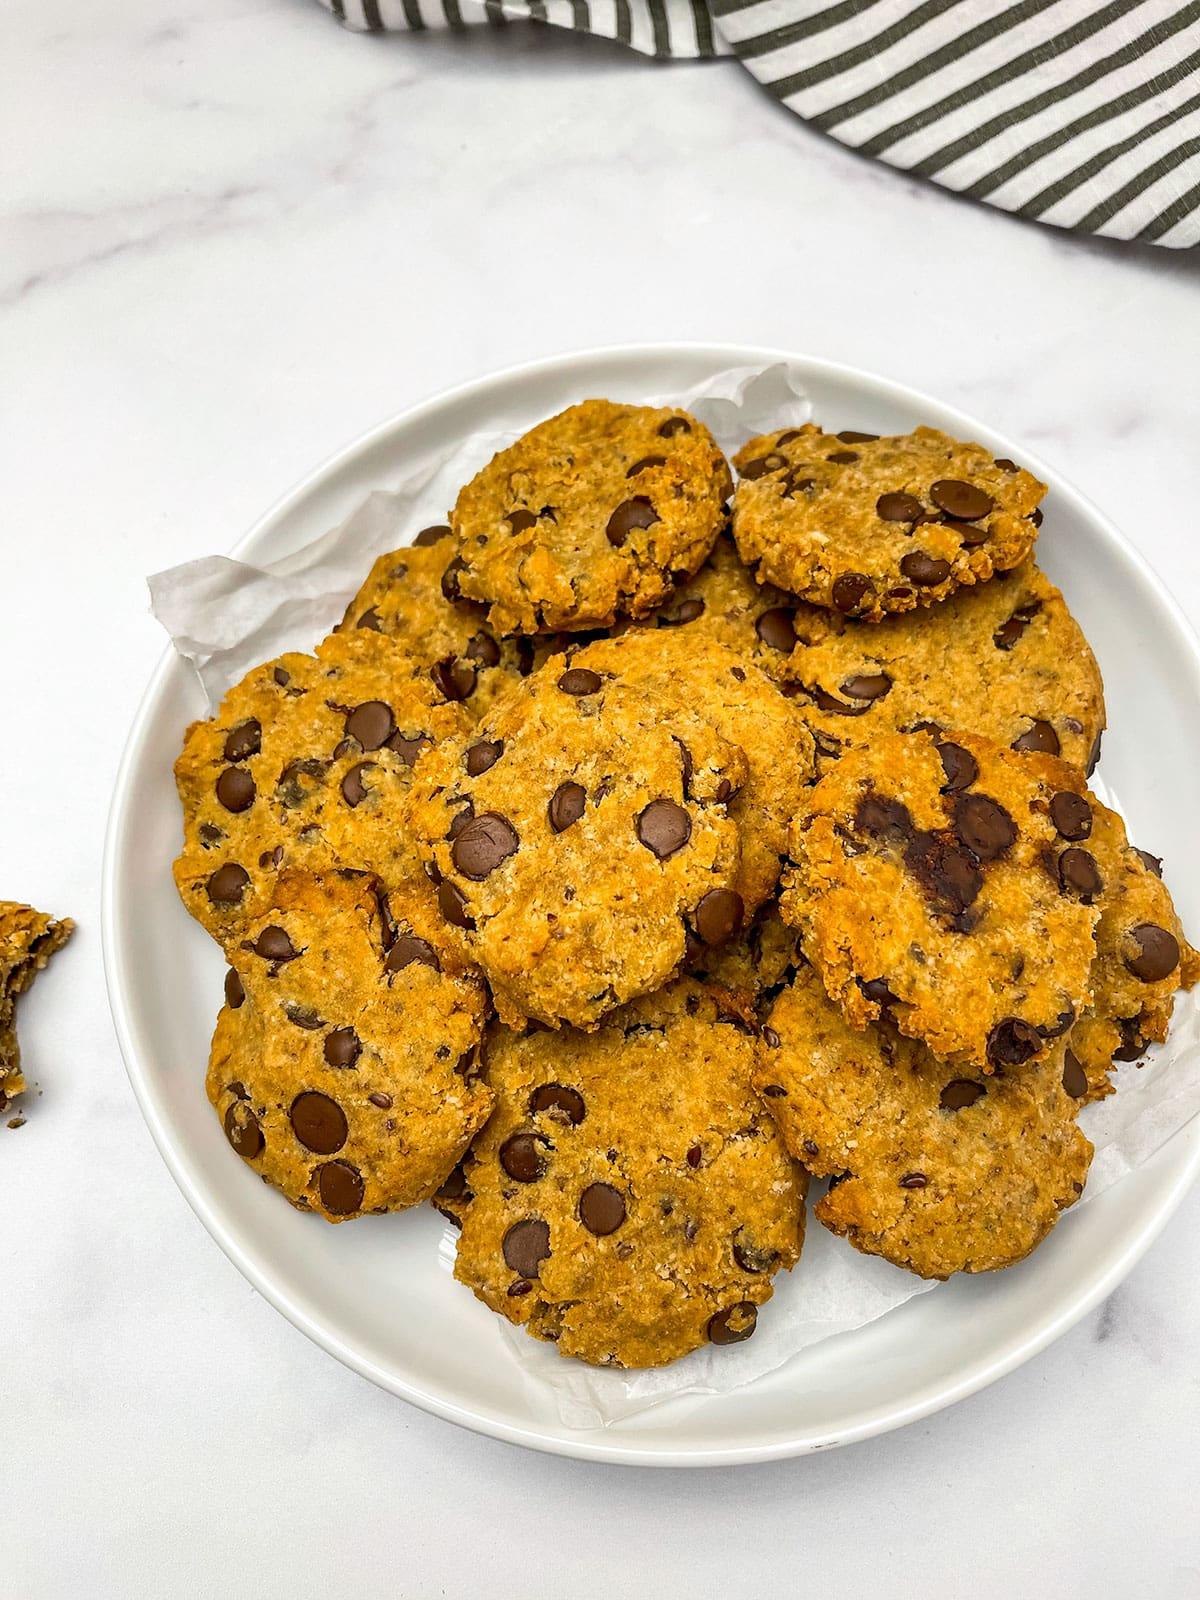 vegan gluten free chocolate chips cookies on a white plate